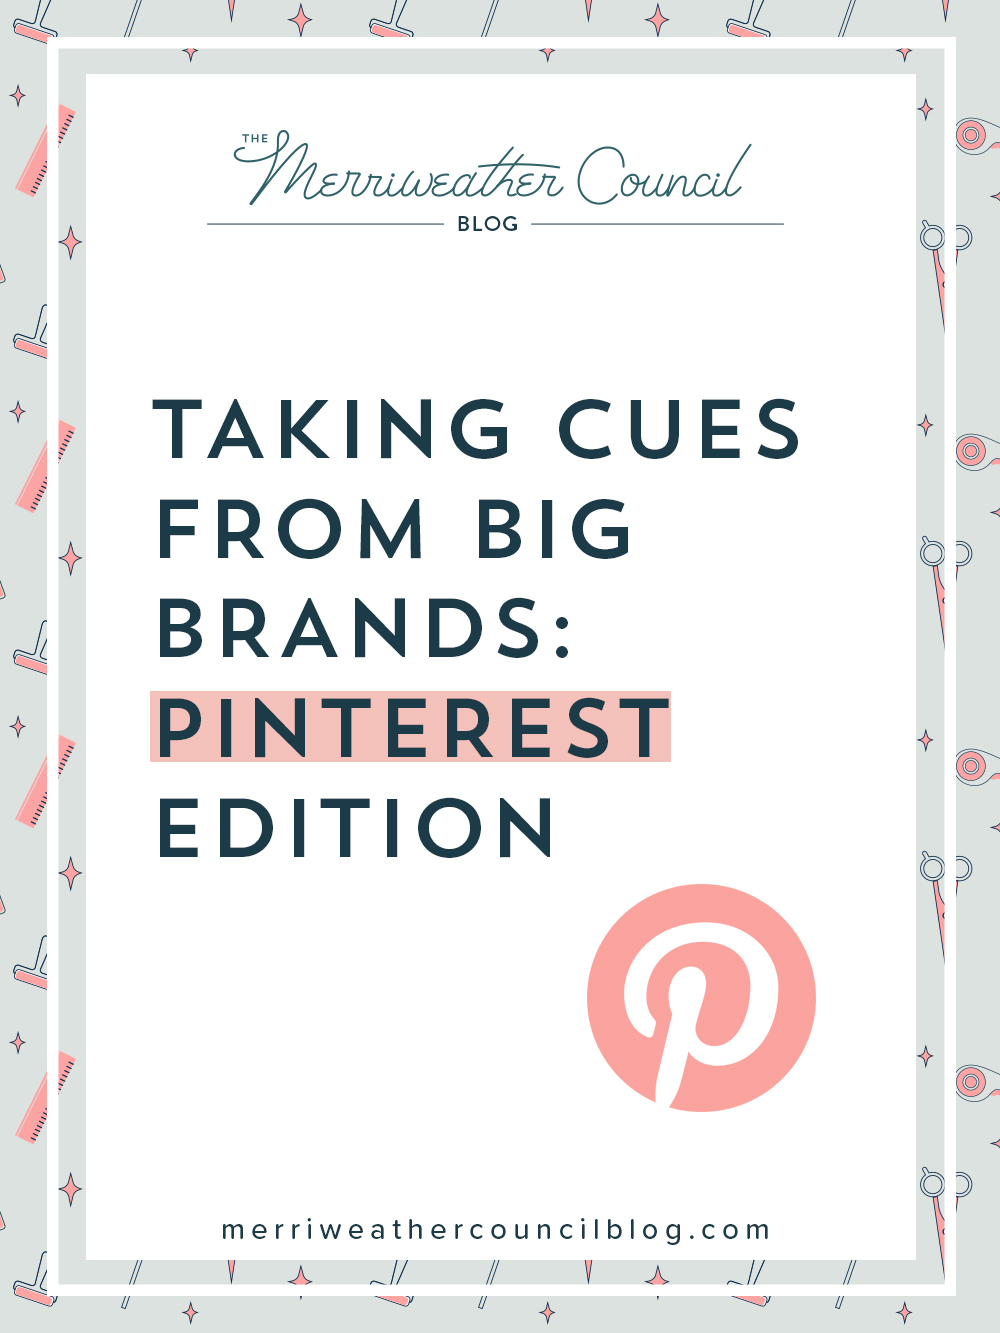 taking cues from big brands on pinterest | the merriweather council blog